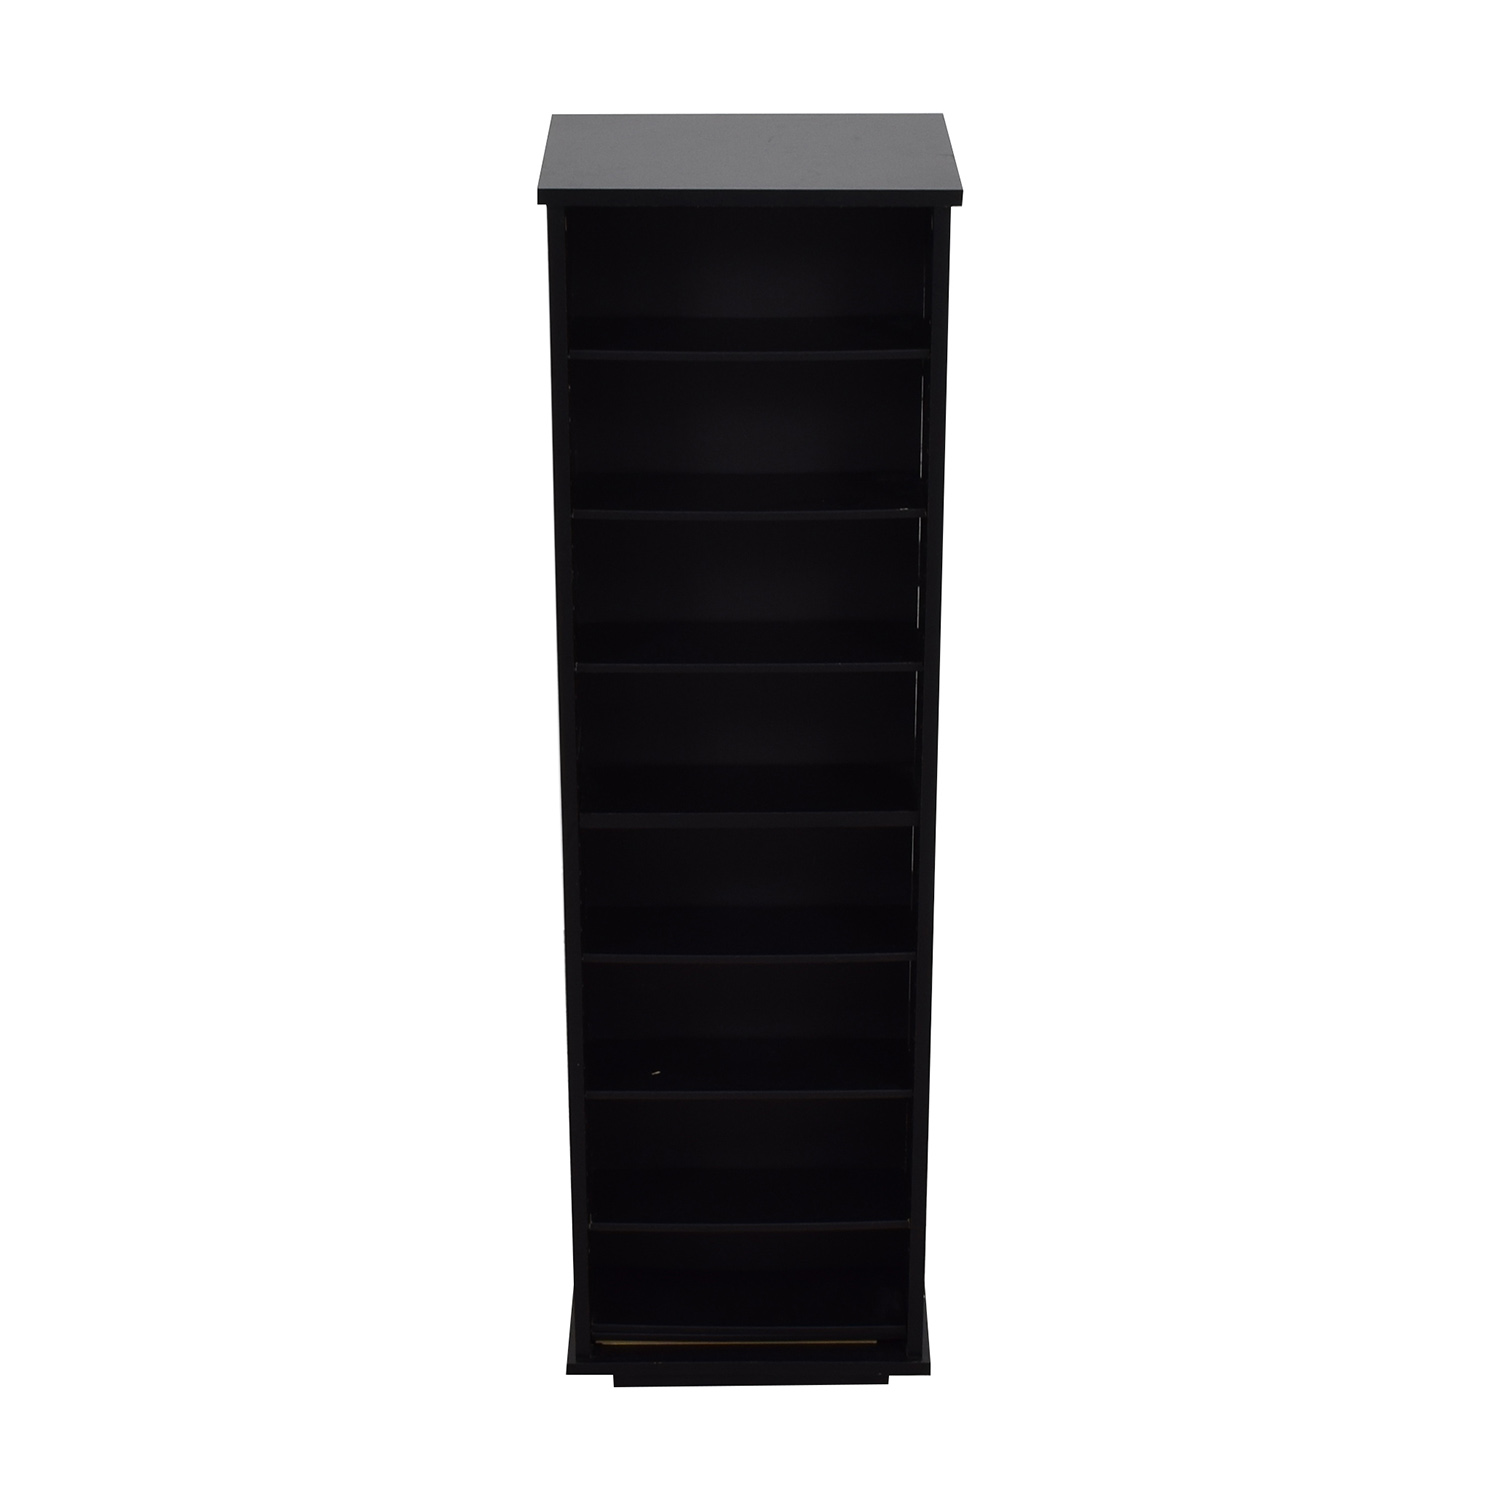 Black CD DVD or Book Tower Bookcases & Shelving